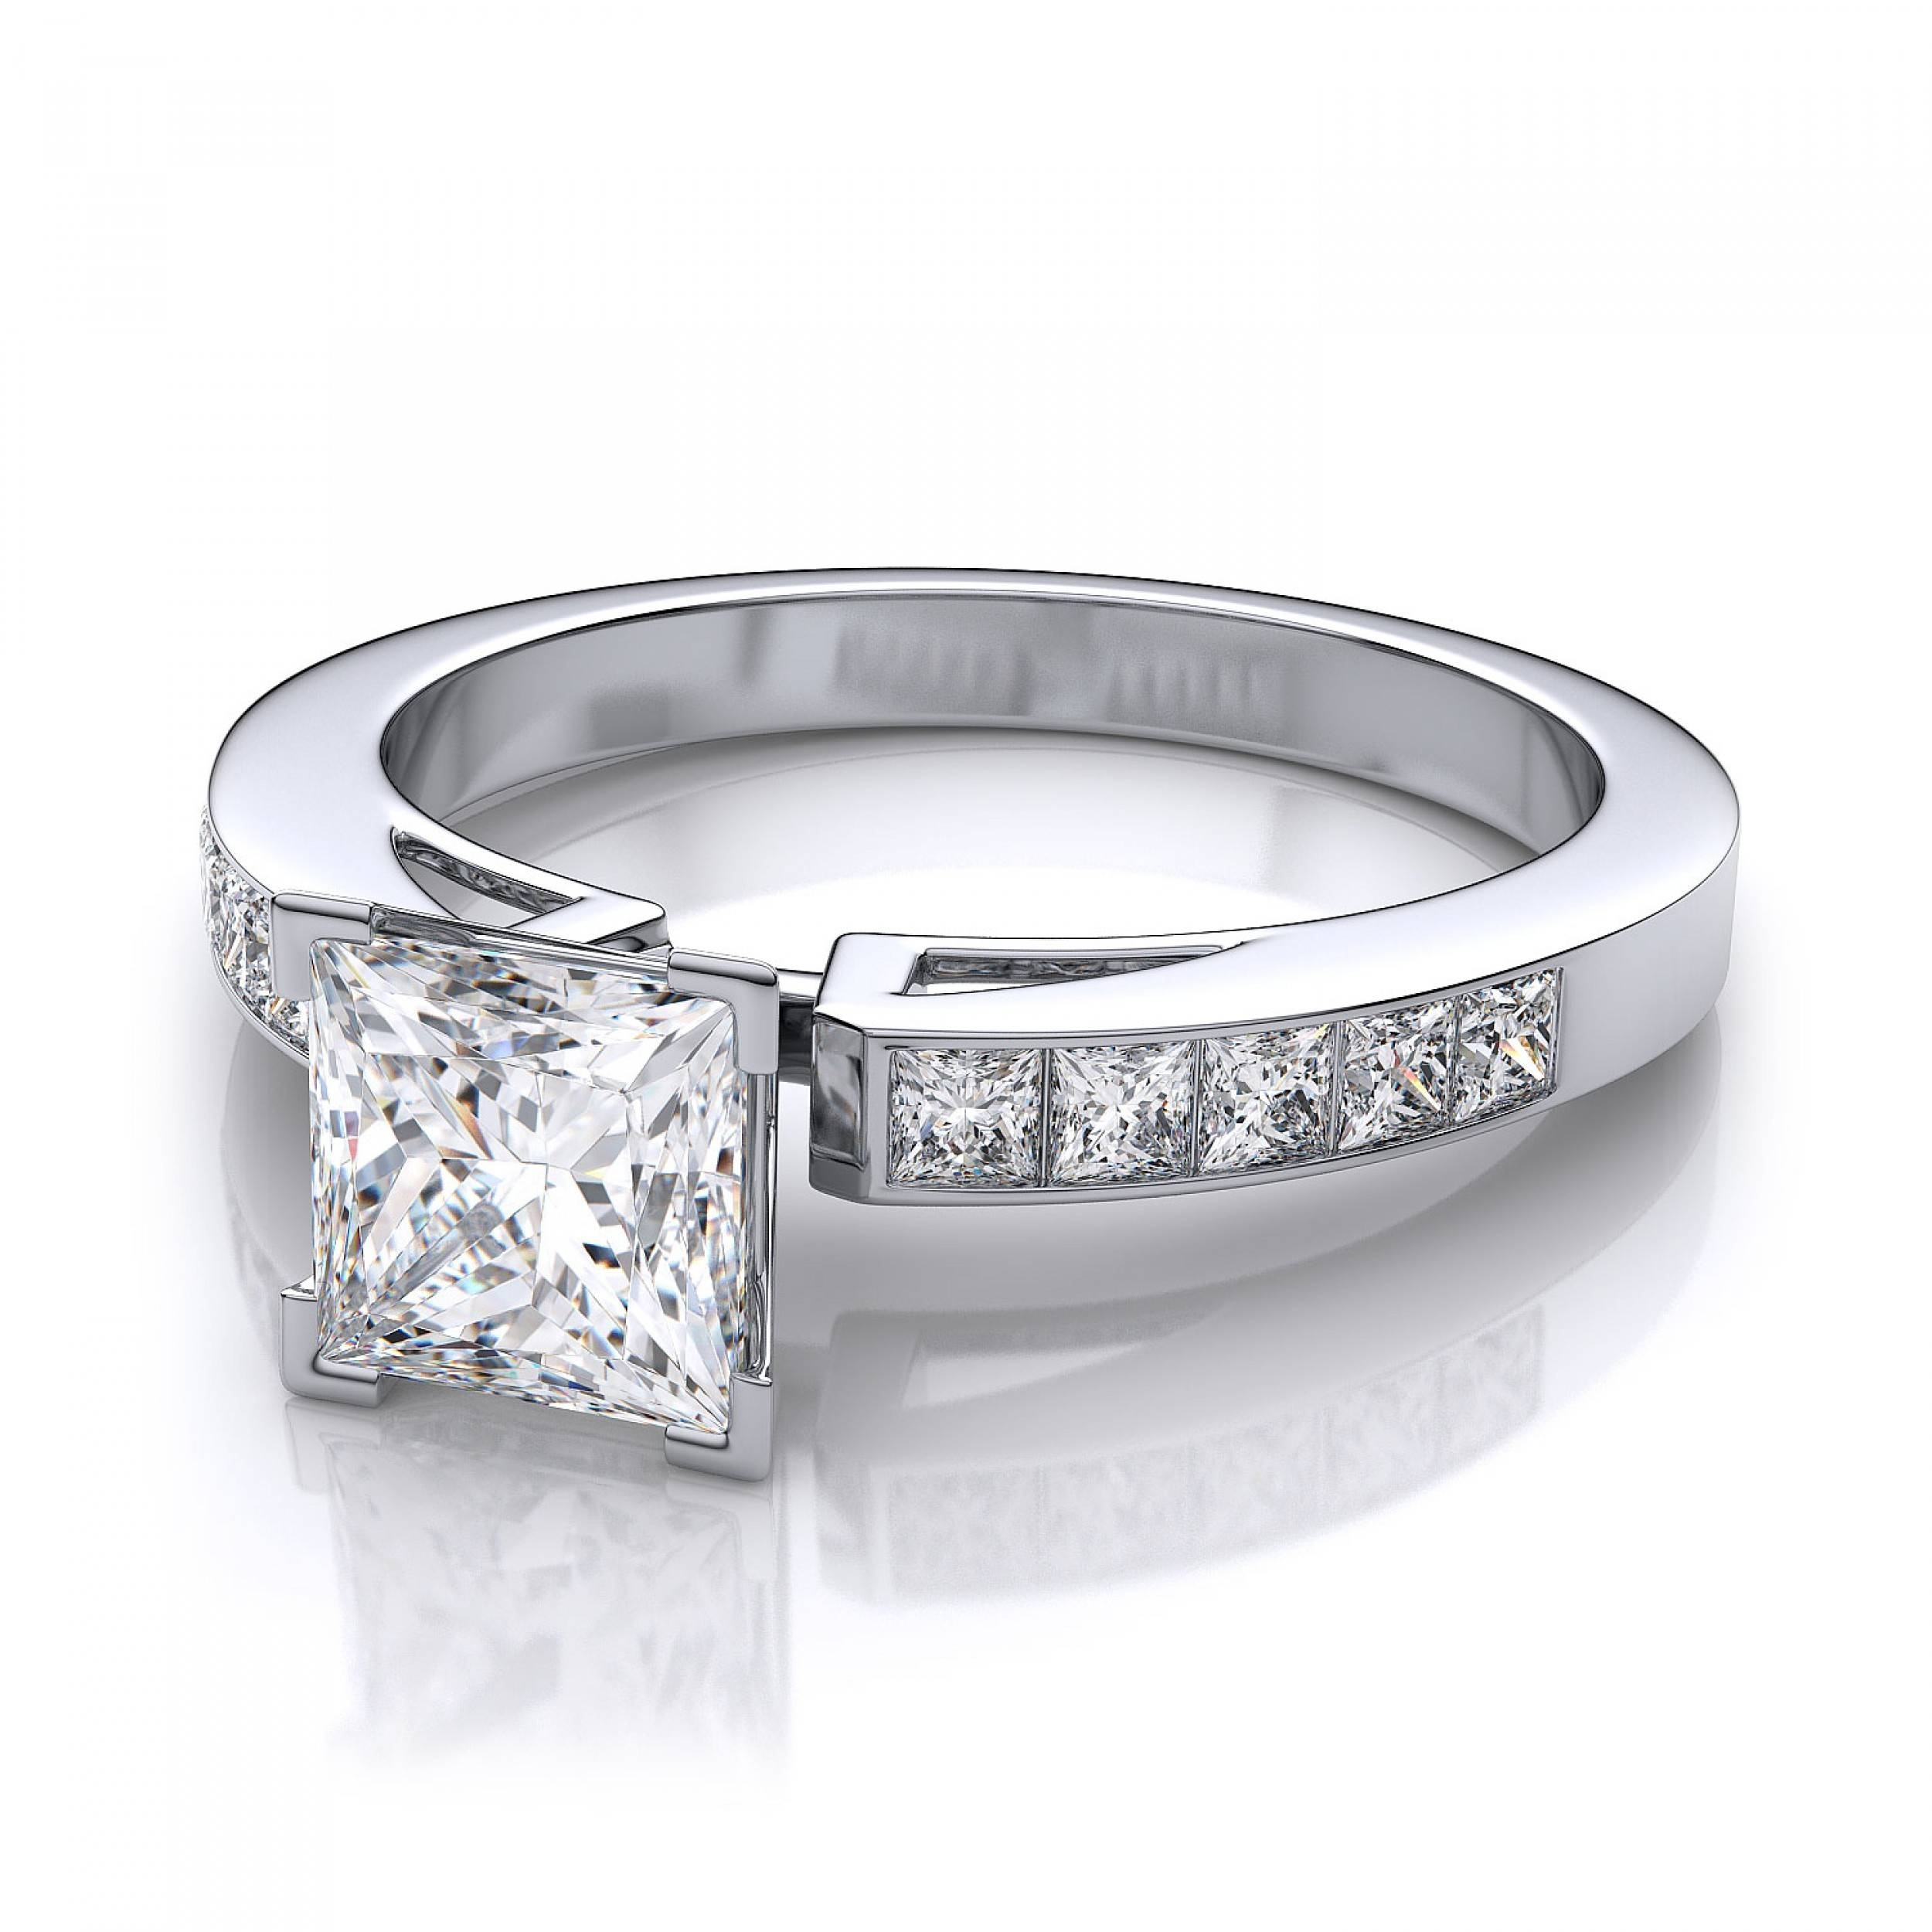 35ctw Invisible Set Princess Cut Sidestones Engagement Ring With Regard To Princess Cut Diamond Engagement Rings (View 7 of 15)